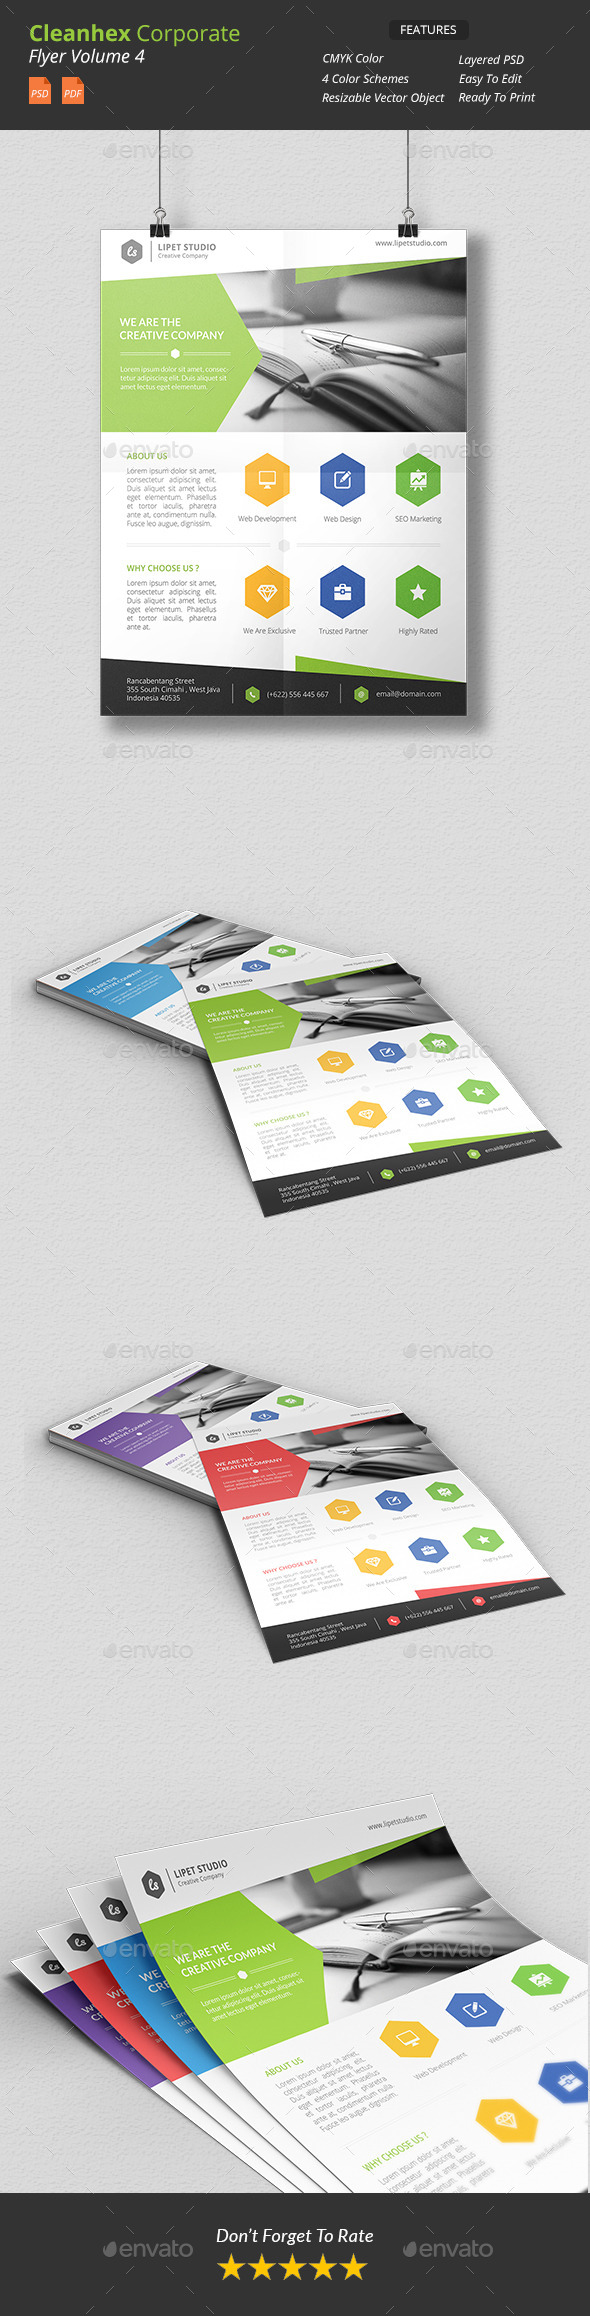 GraphicRiver Cleanhex Clean Corporate Flyer v4 9957495